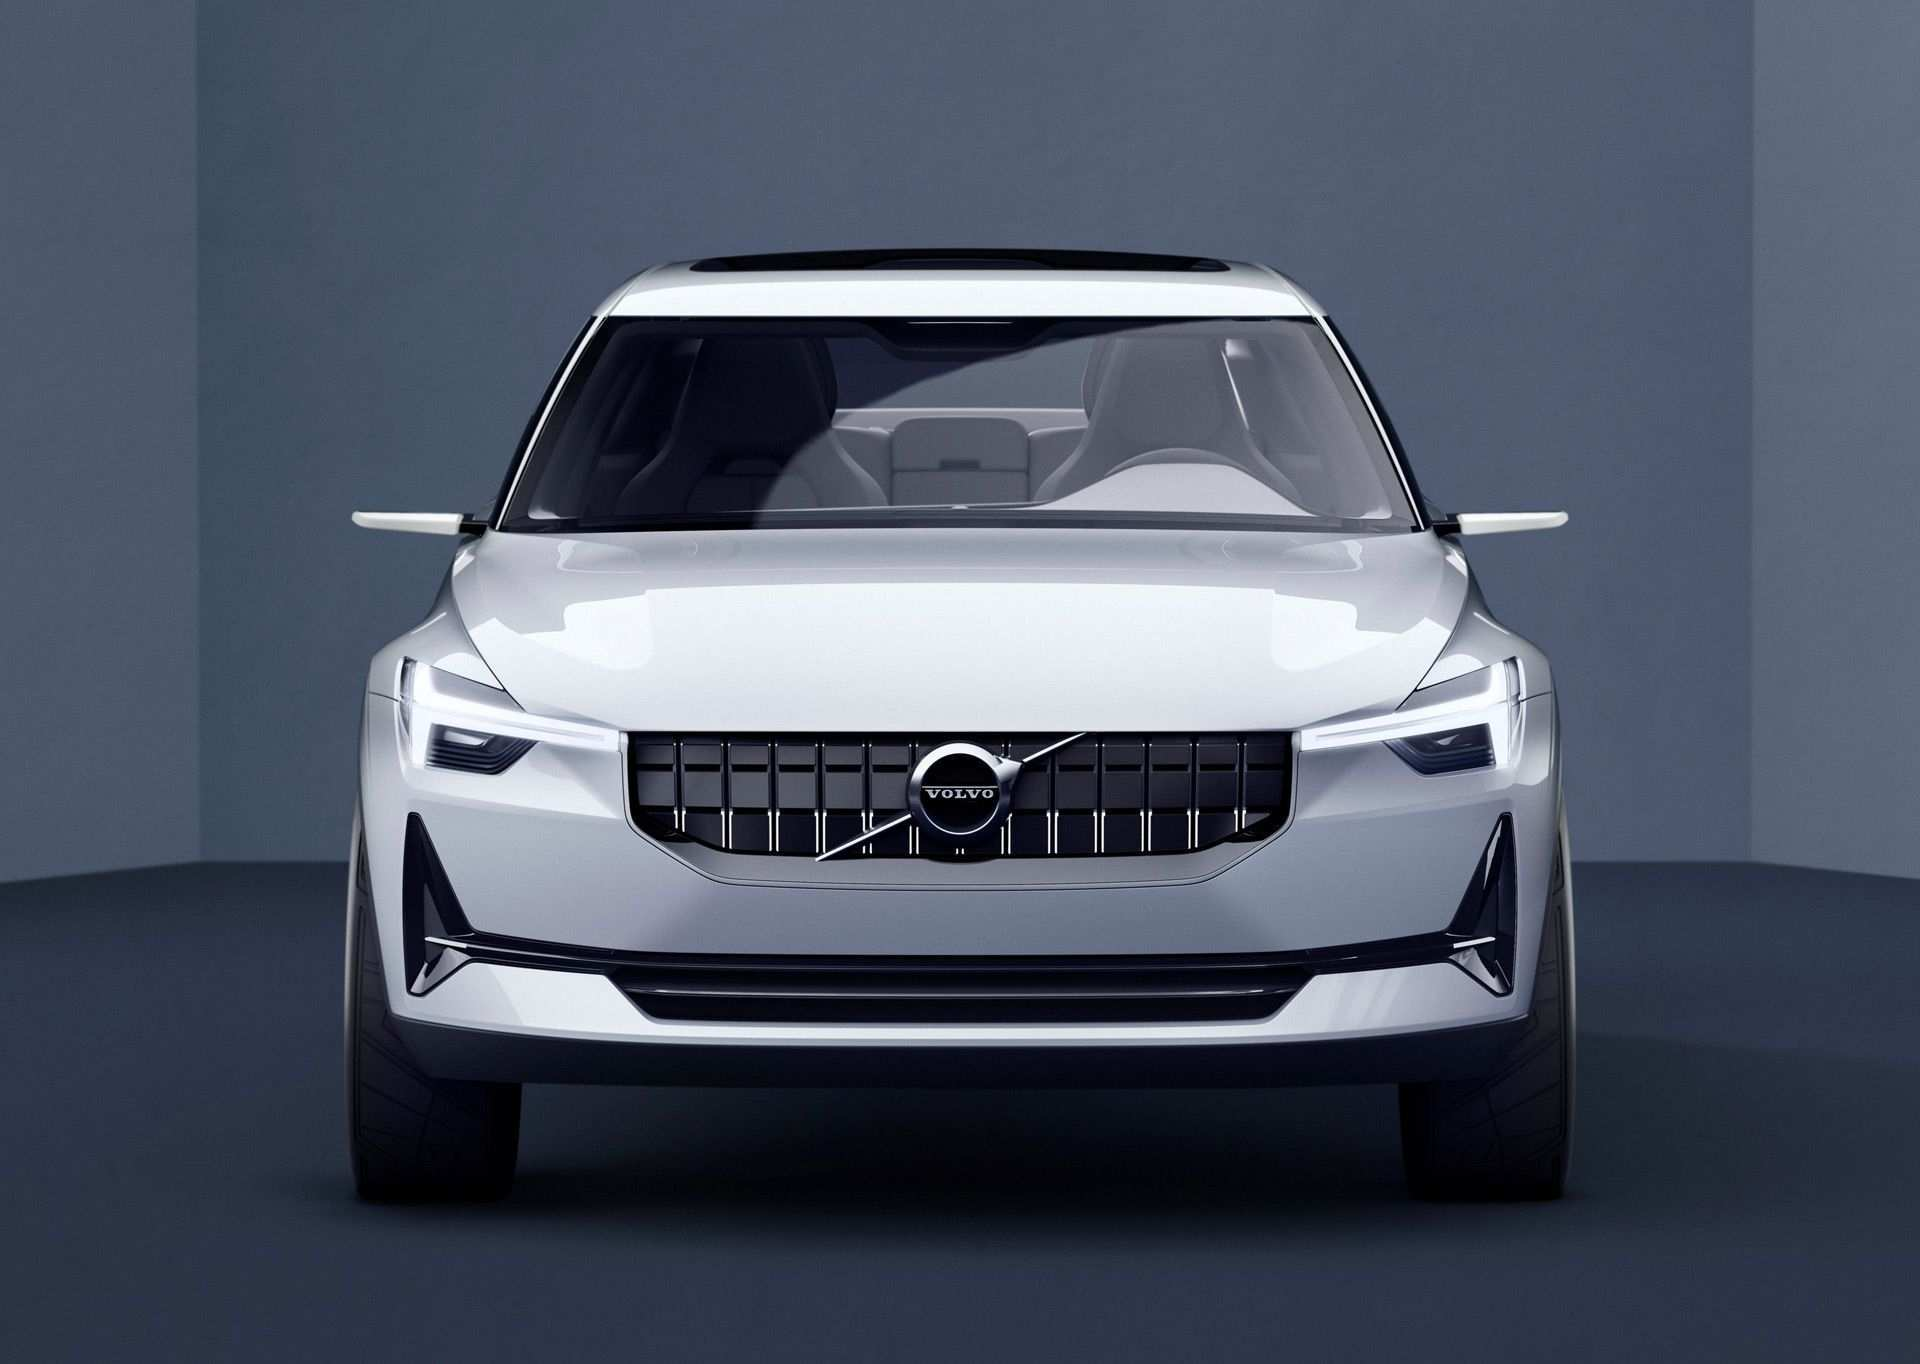 82 All New Volvo Electric Cars By 2019 Redesign Images by Volvo Electric Cars By 2019 Redesign